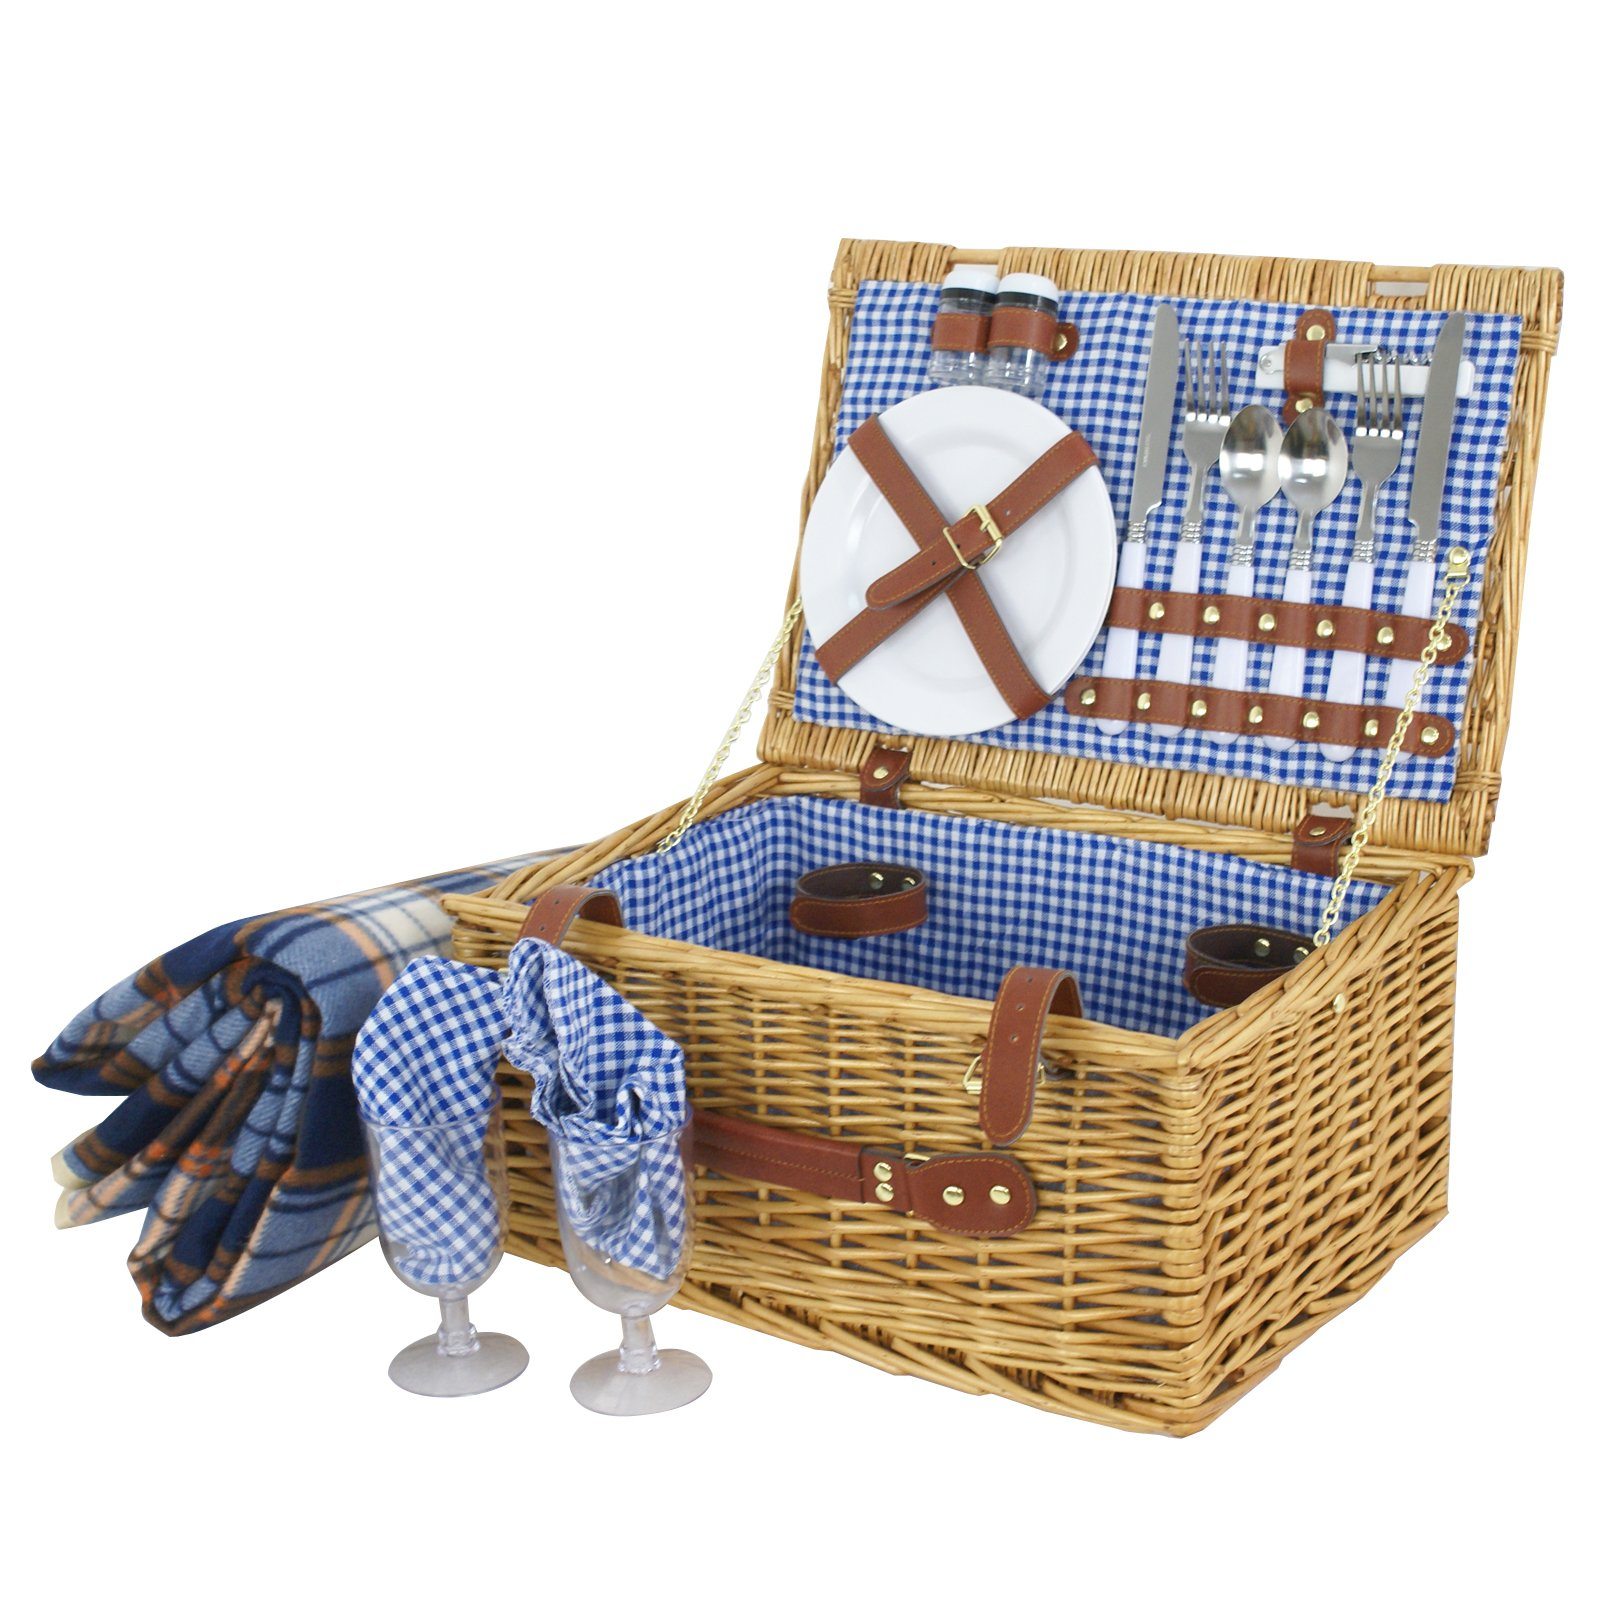 SUPER DEAL Picnic Basket Wicker Hamper Set w/Cutlery, Plates, Glasses, Napkins Stainless Steel Tableware, Blue Checked Pattern Lining & Fleece Blanket (for 2 Person)